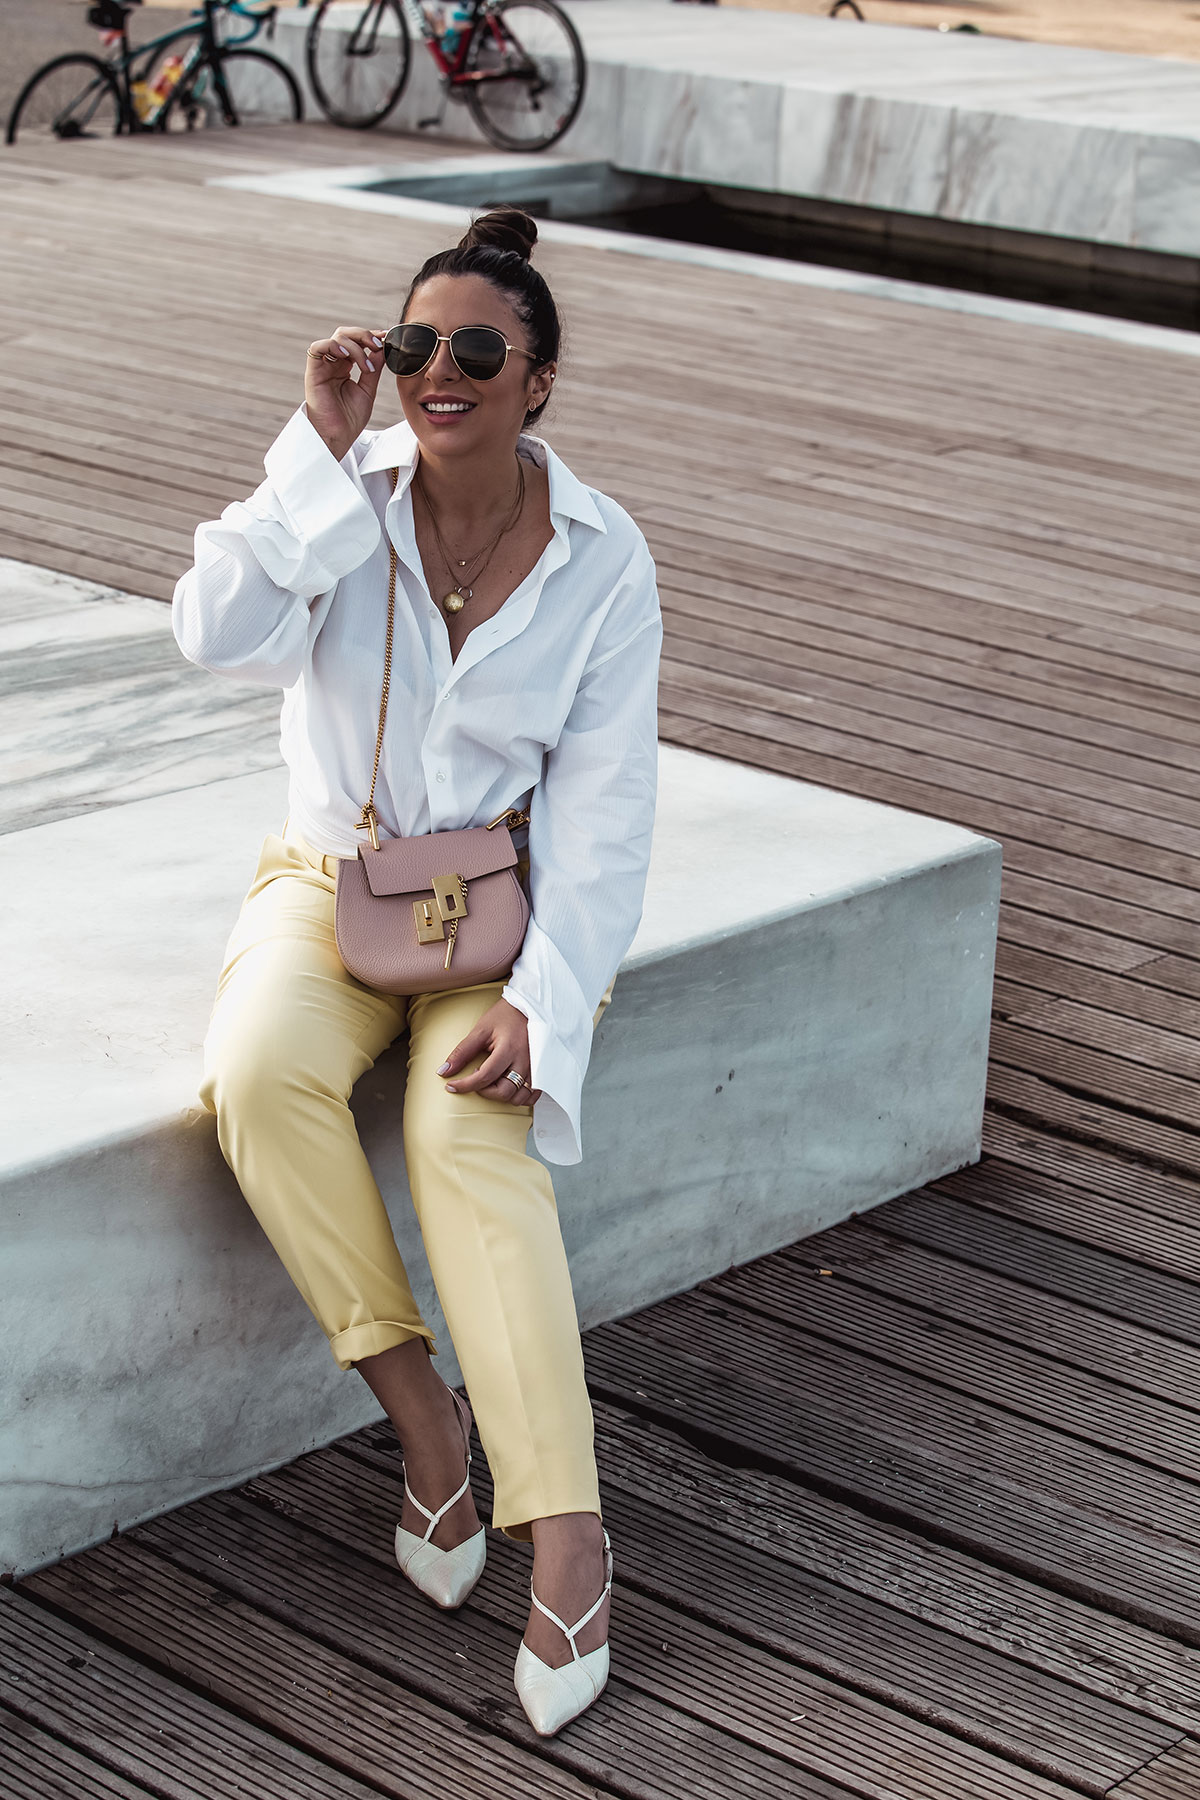 nursing outfit idea - Stella Asteria wearing men's shirt, yellow pants, Chloé Drew in cement pink and Gucci men's sunglasses